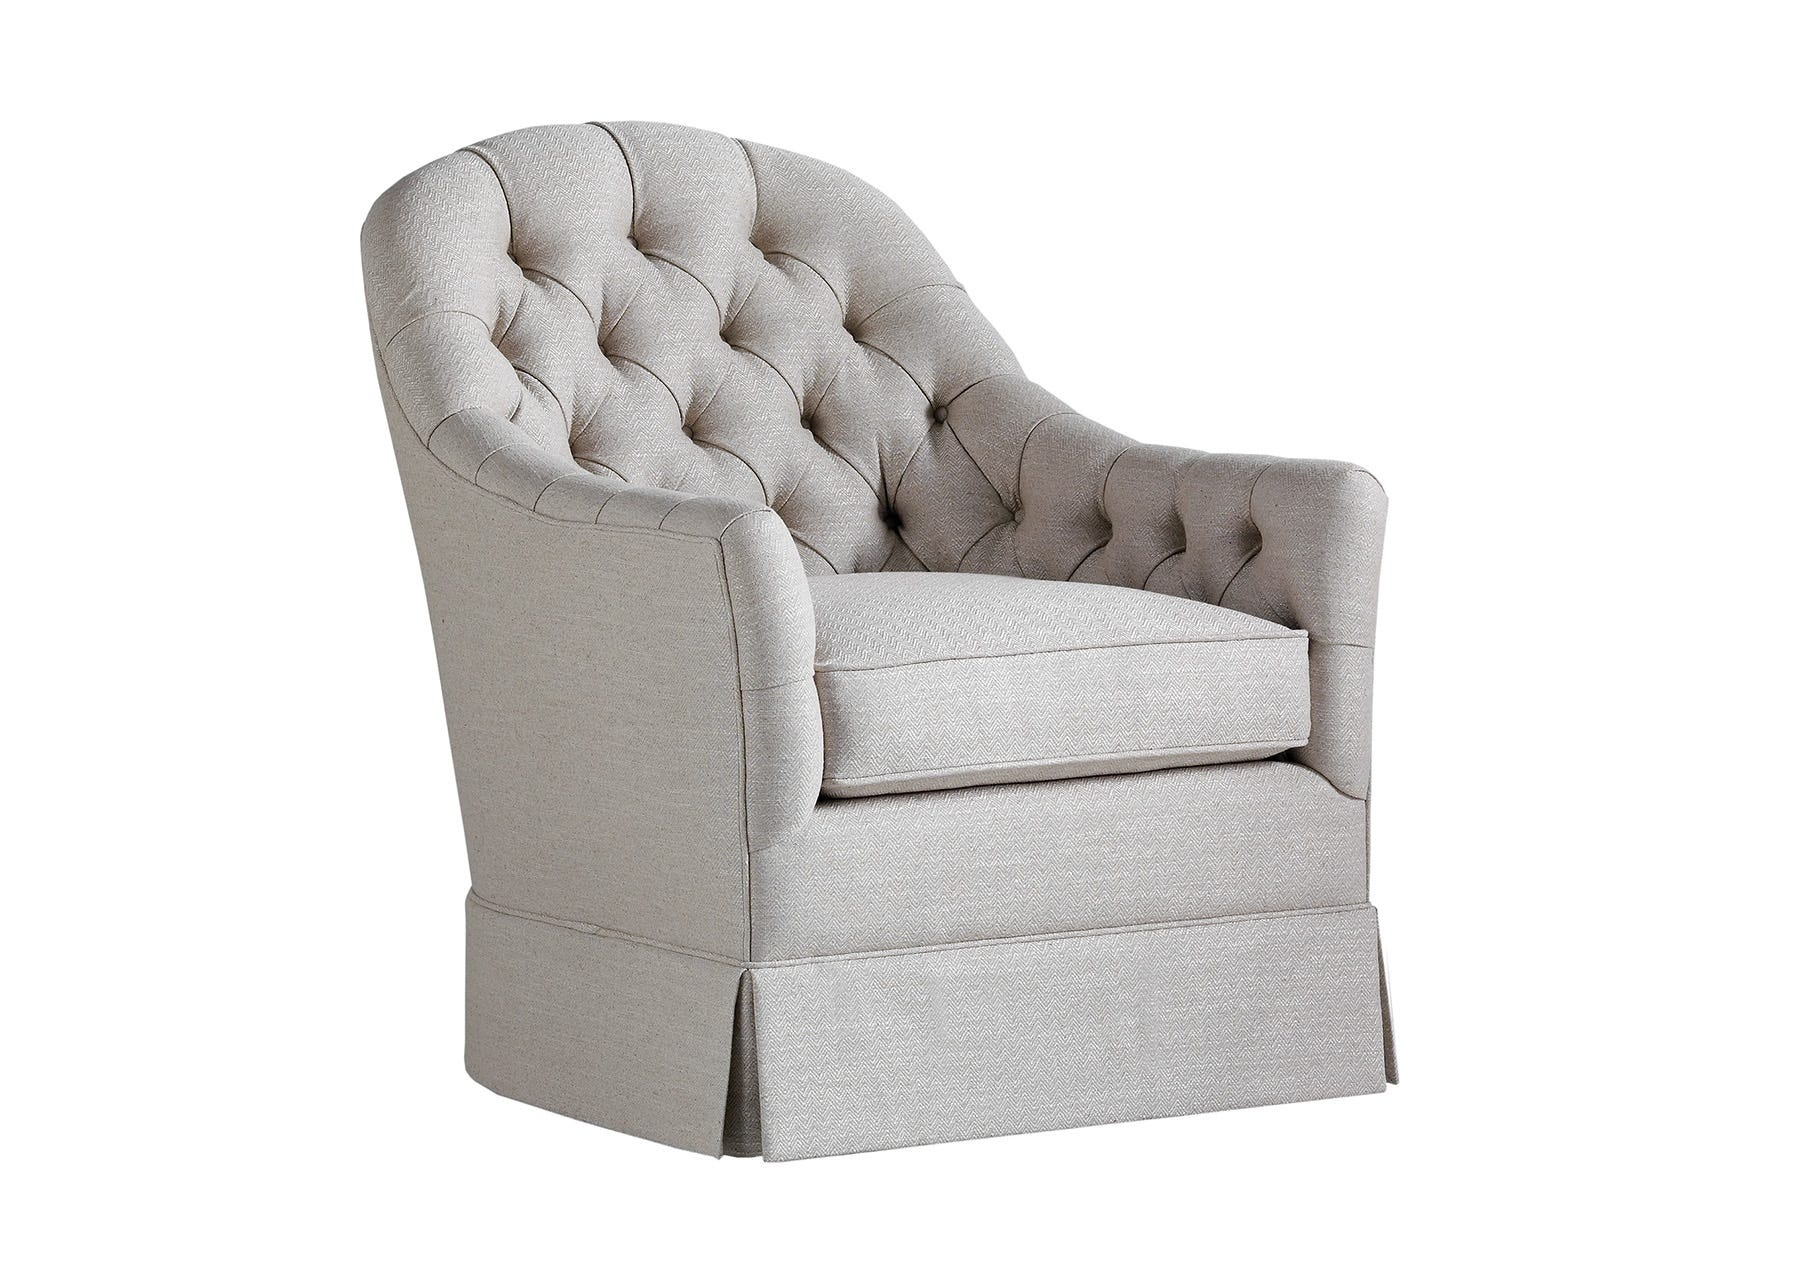 Other People Want Their Accent Chair To Swivel And